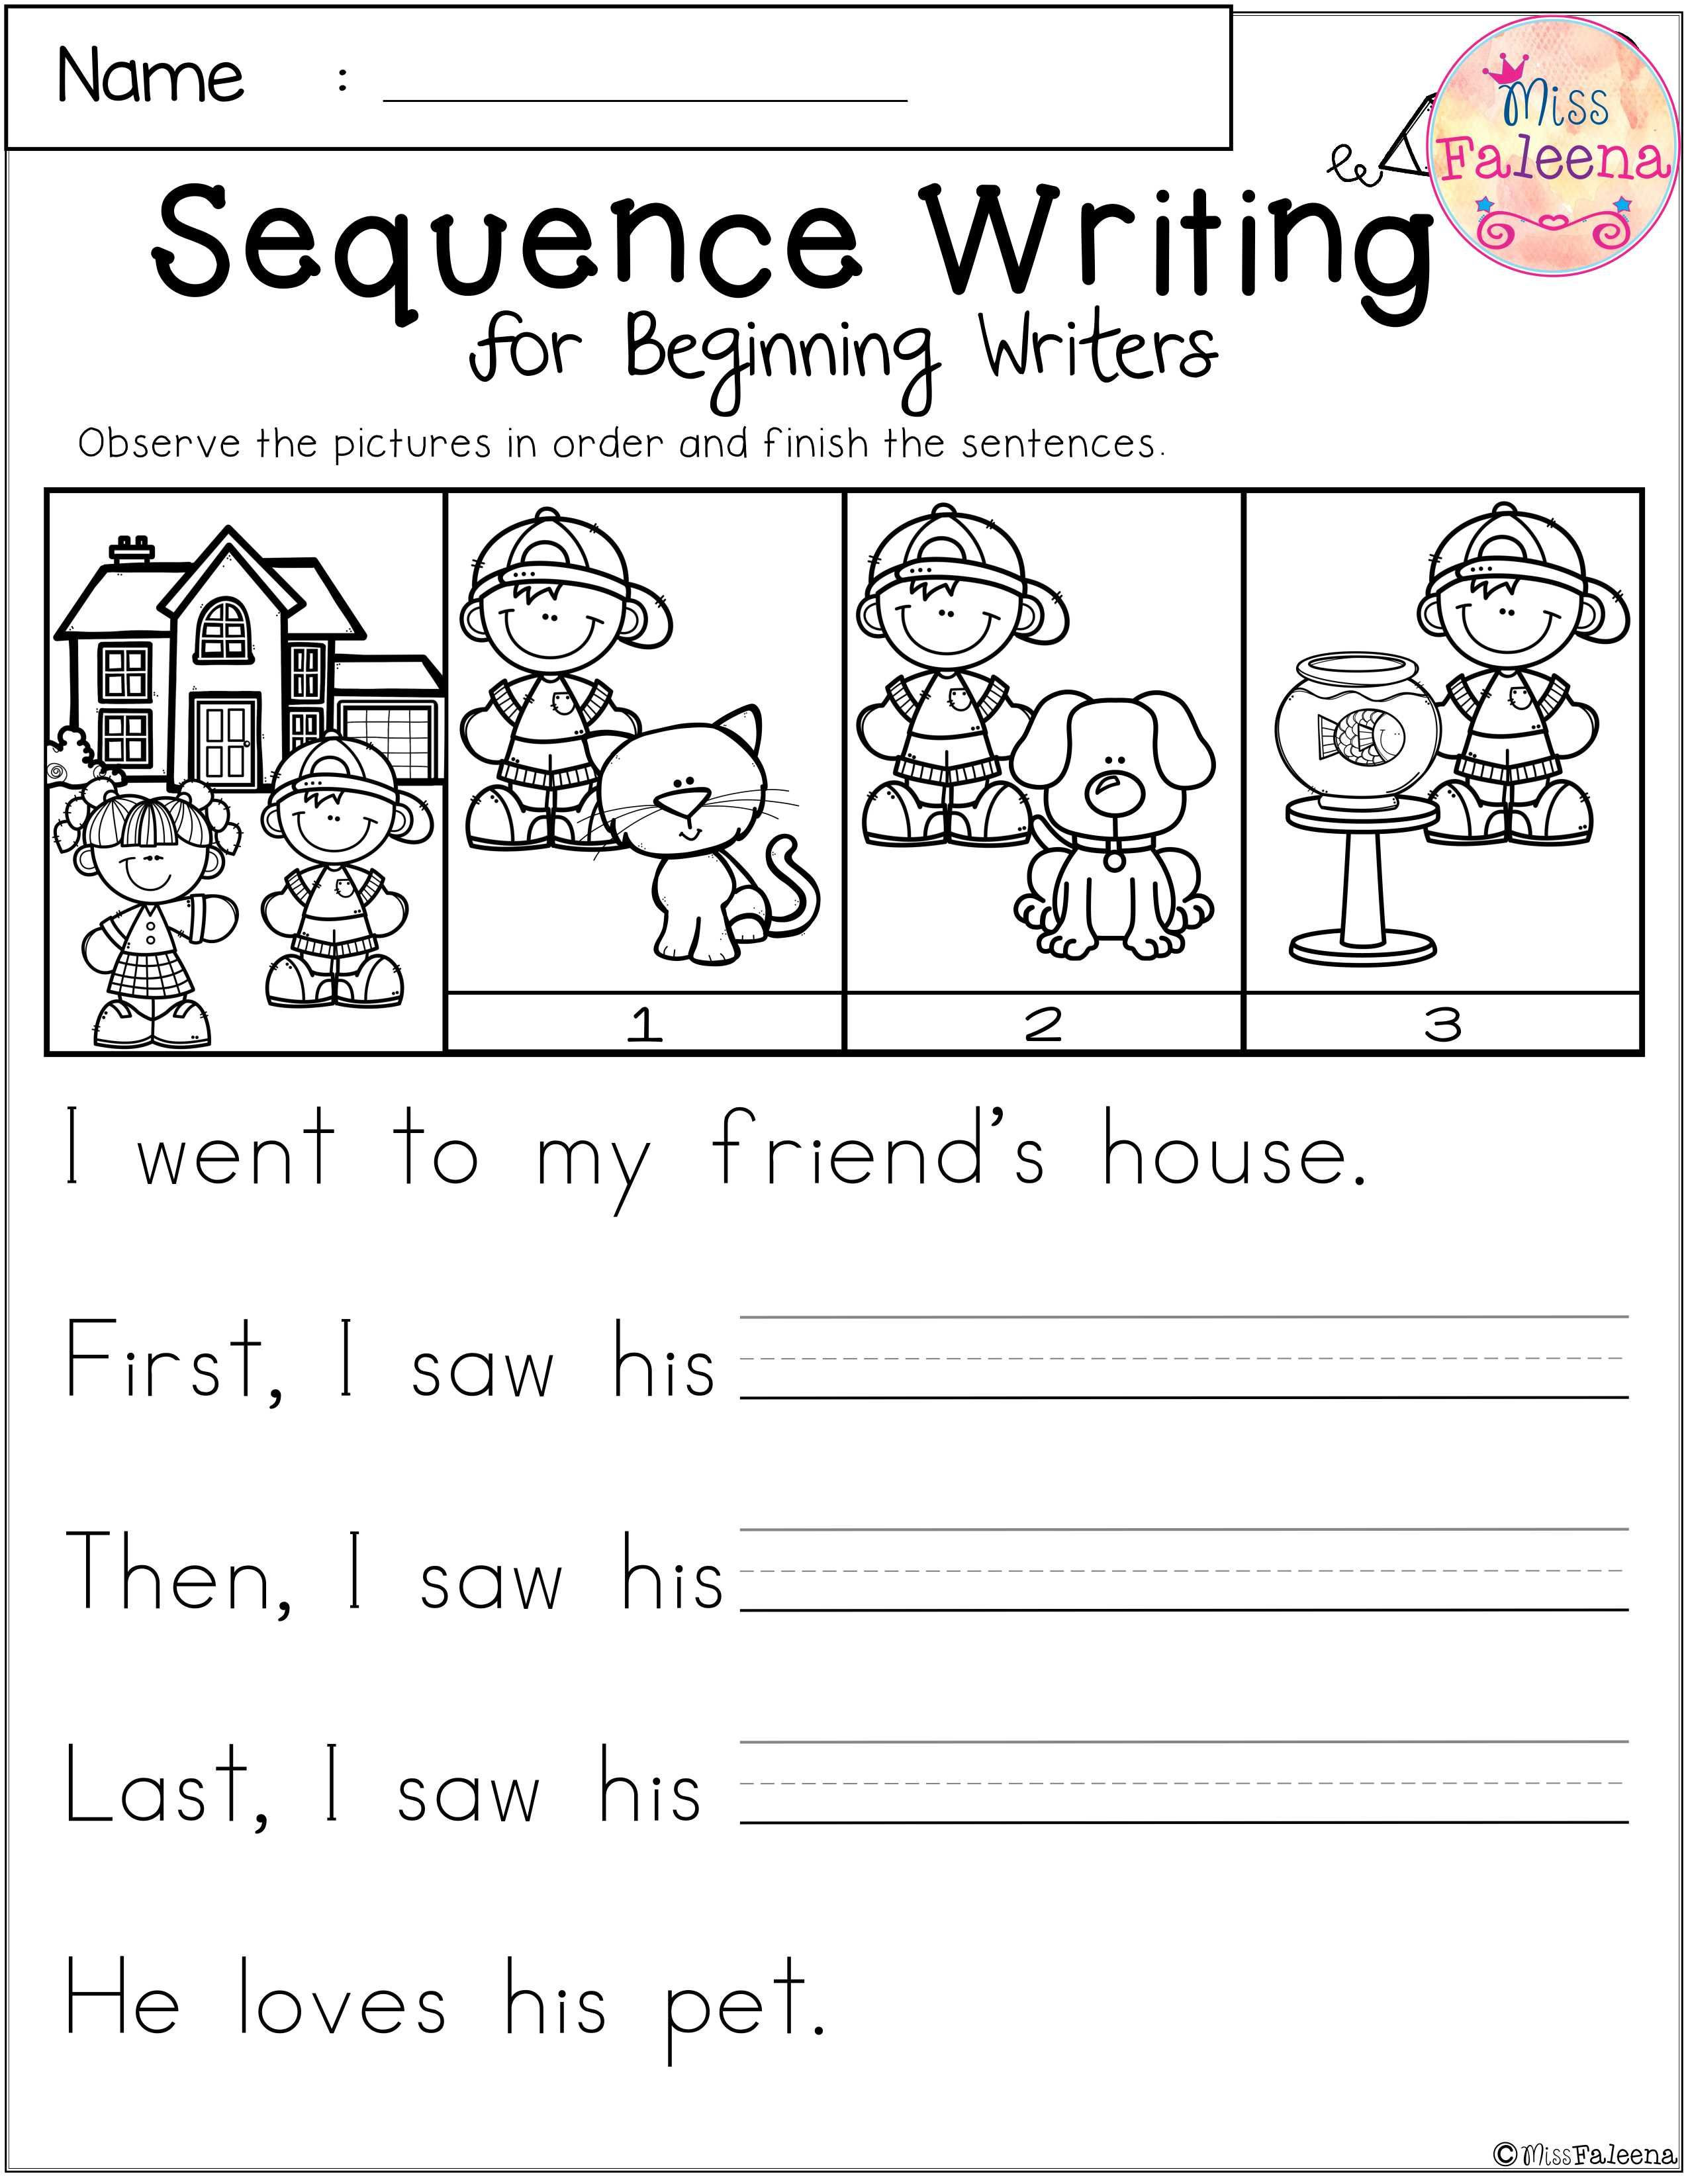 Kindergarten Sequence Worksheets Free Sequence Writing for Beginning Writers with Images